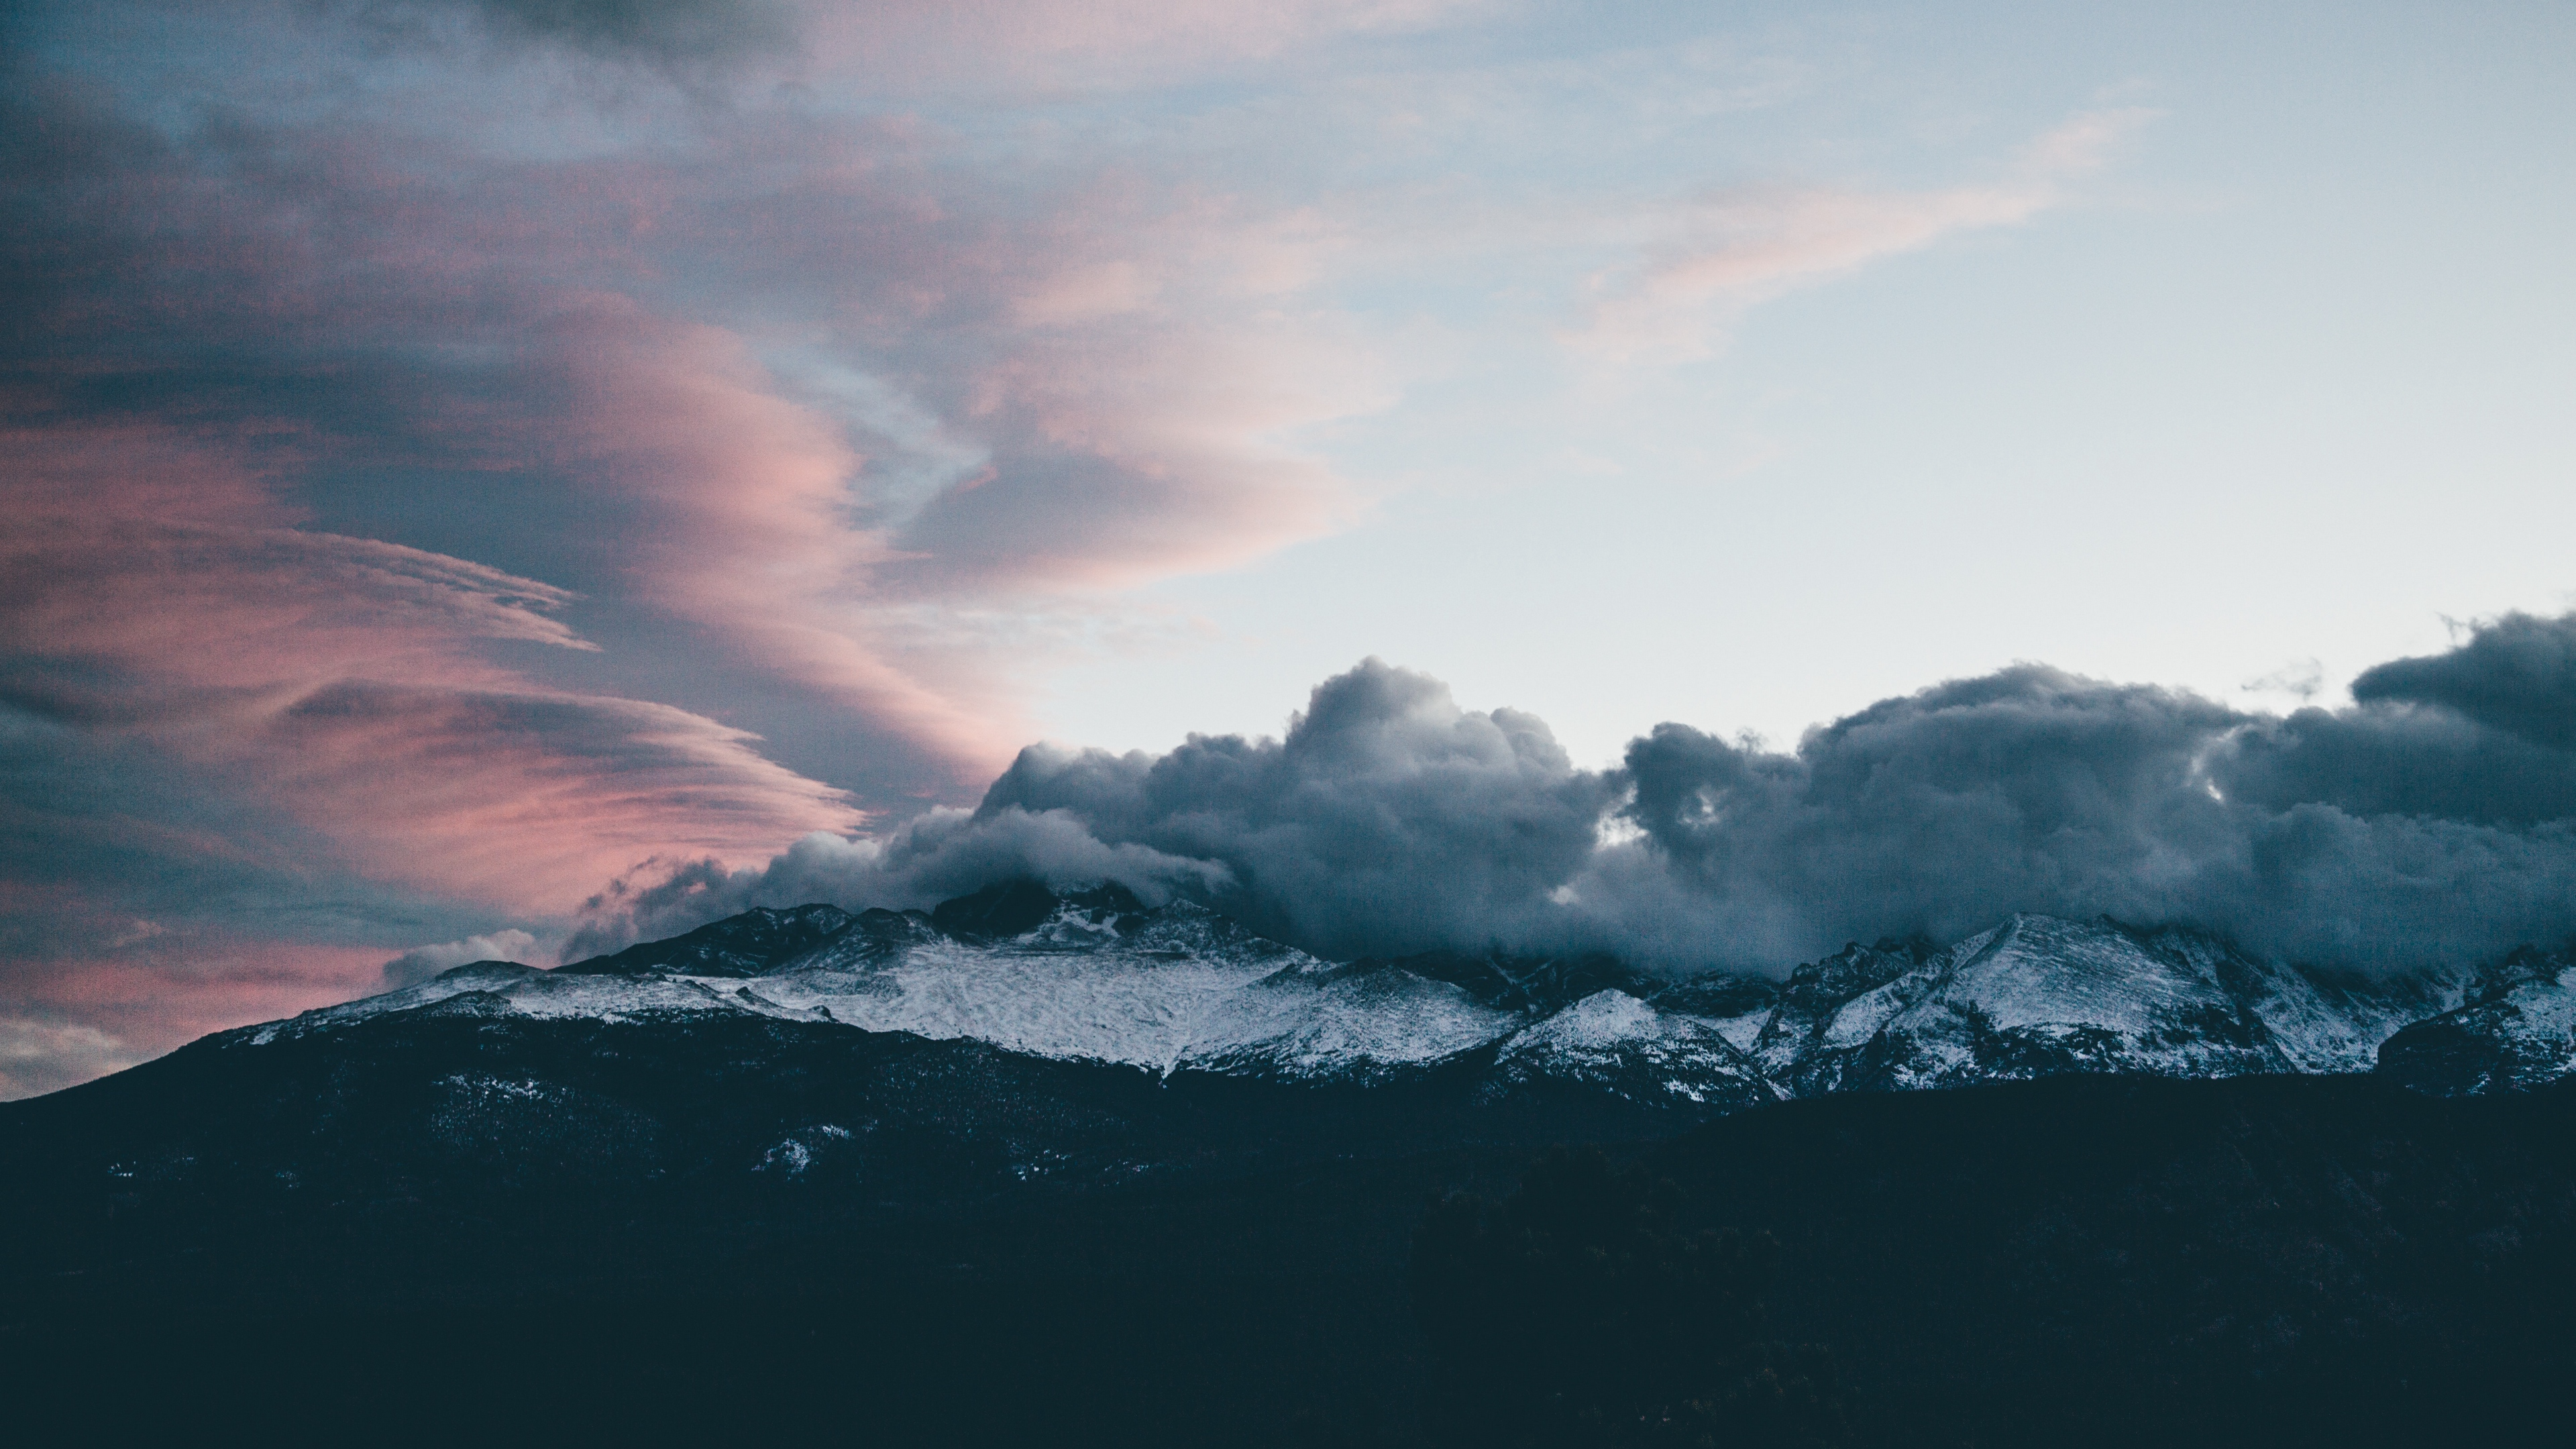 mountains clouds peaks sky 4k 1541117785 - mountains, clouds, peaks, sky 4k - Peaks, Mountains, Clouds